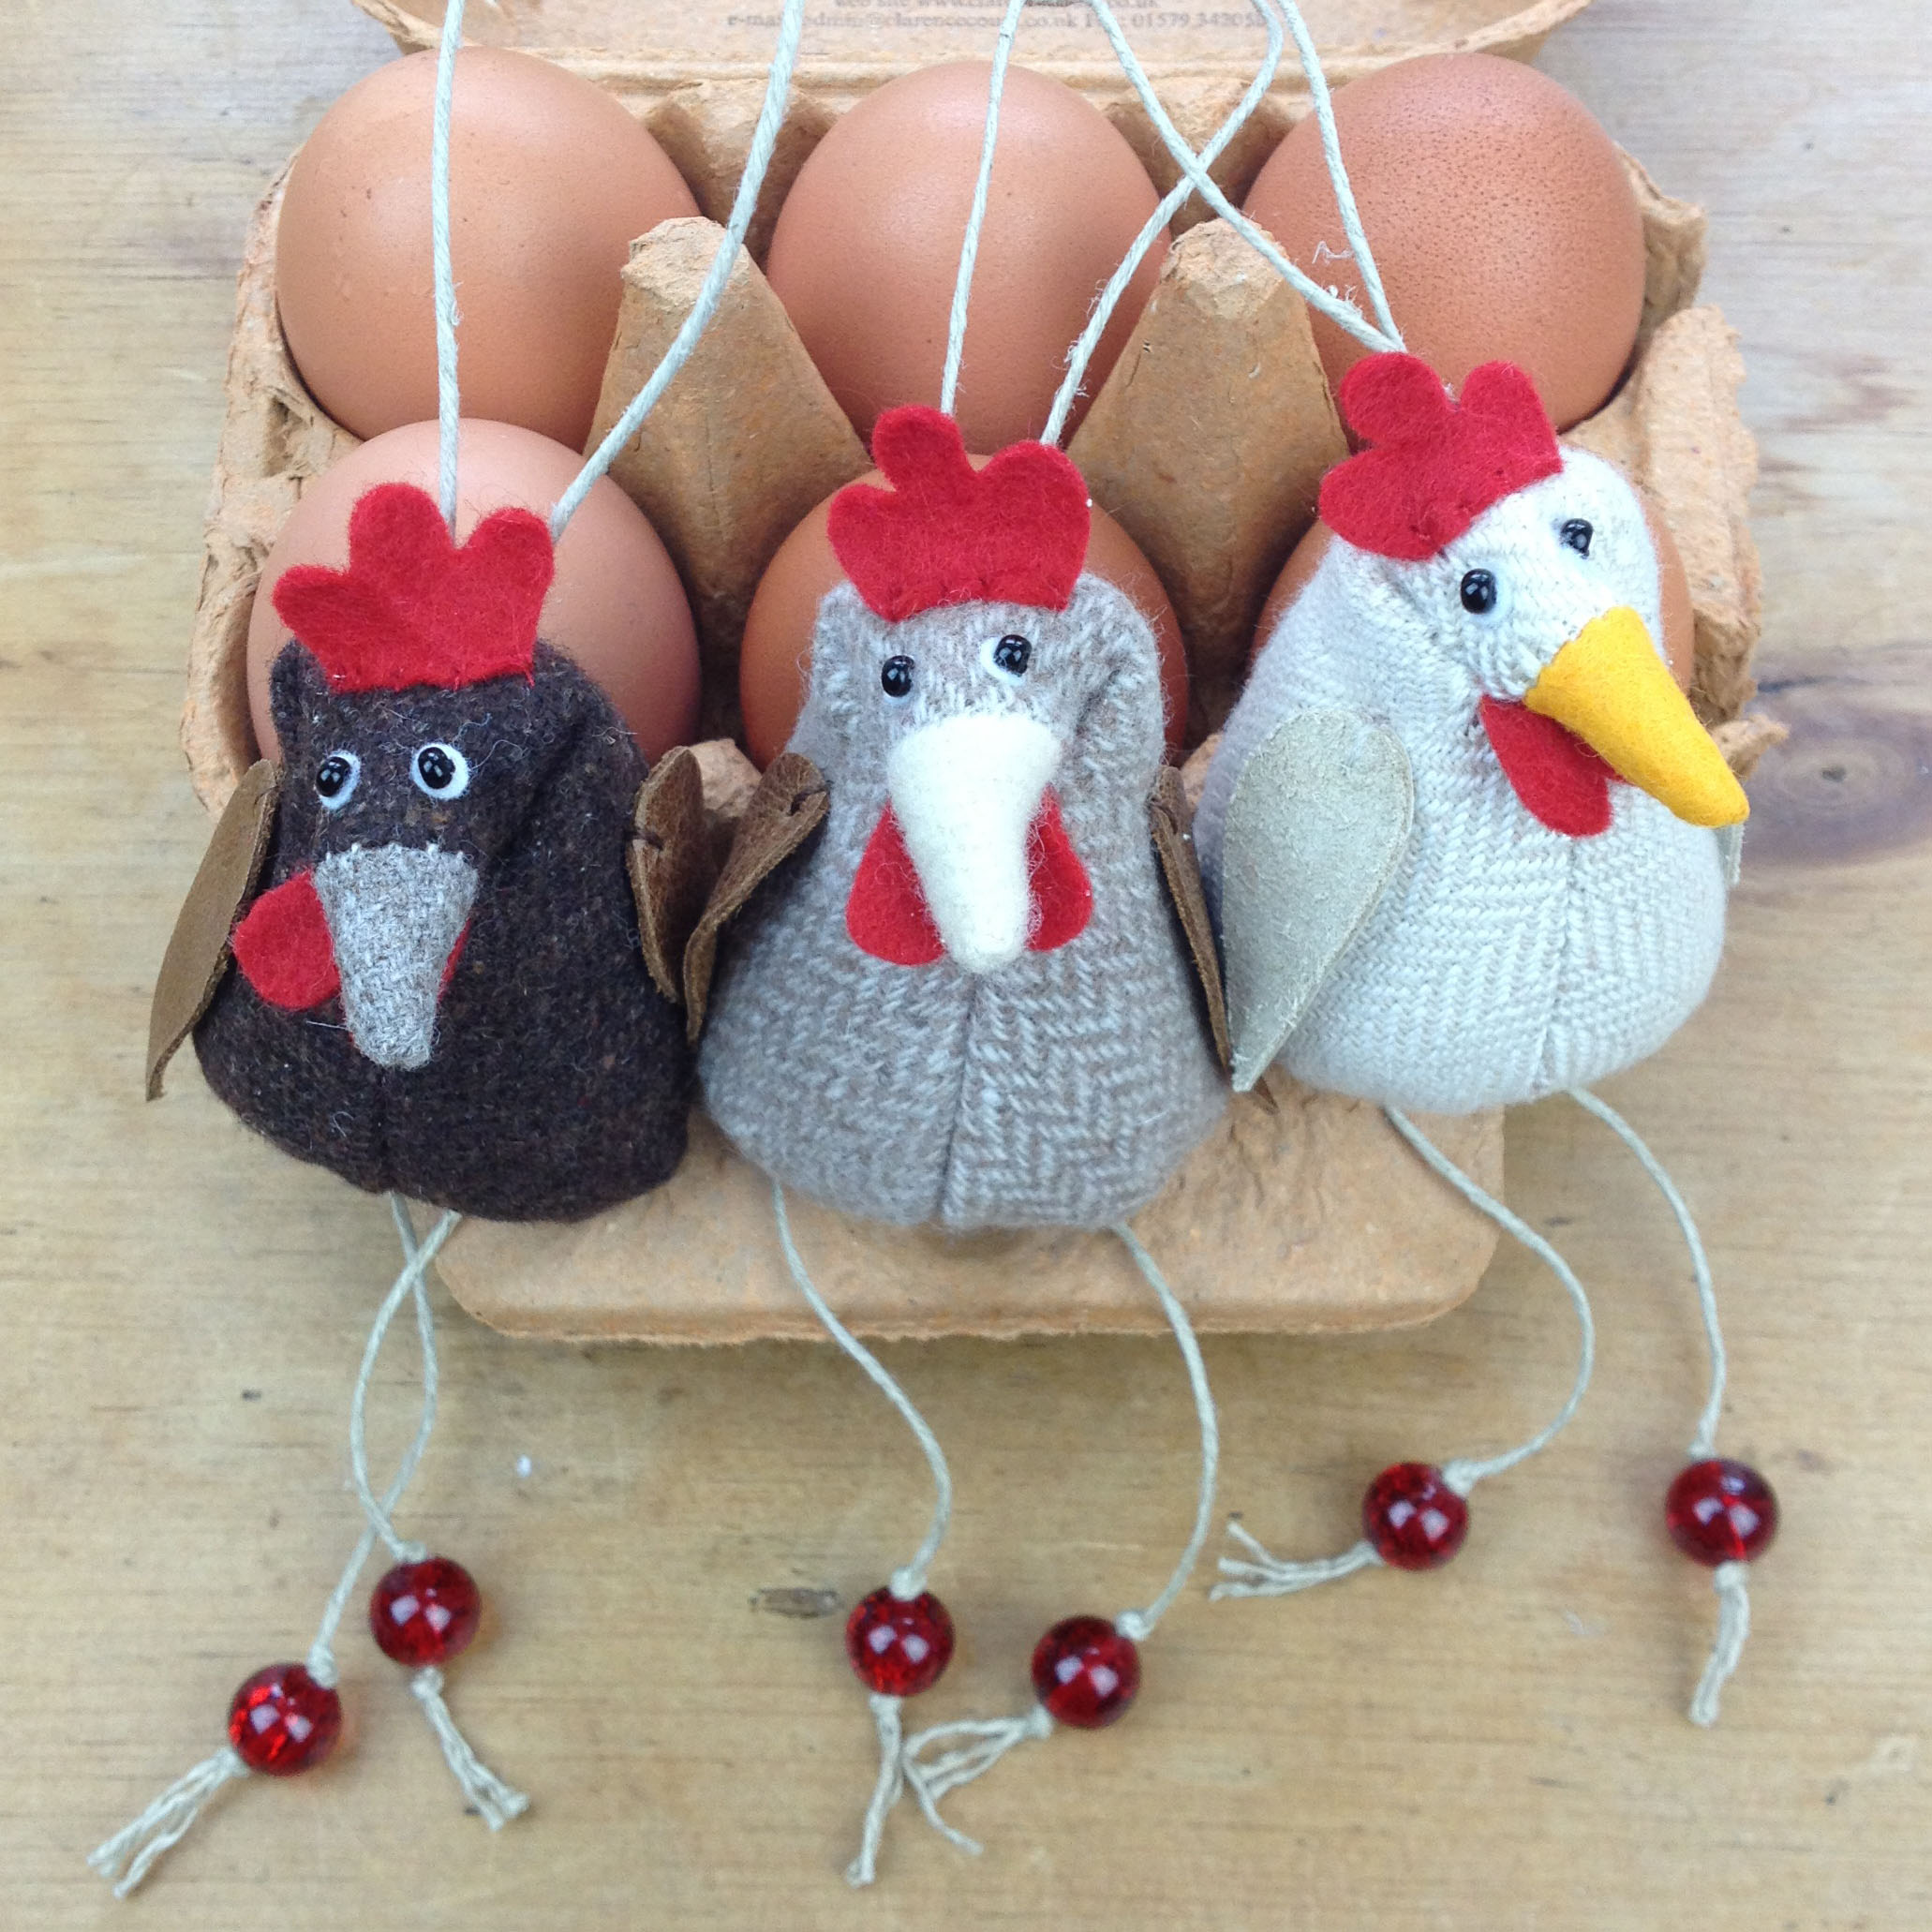 Handmade trio of tweed hanging chickens with leather wings.